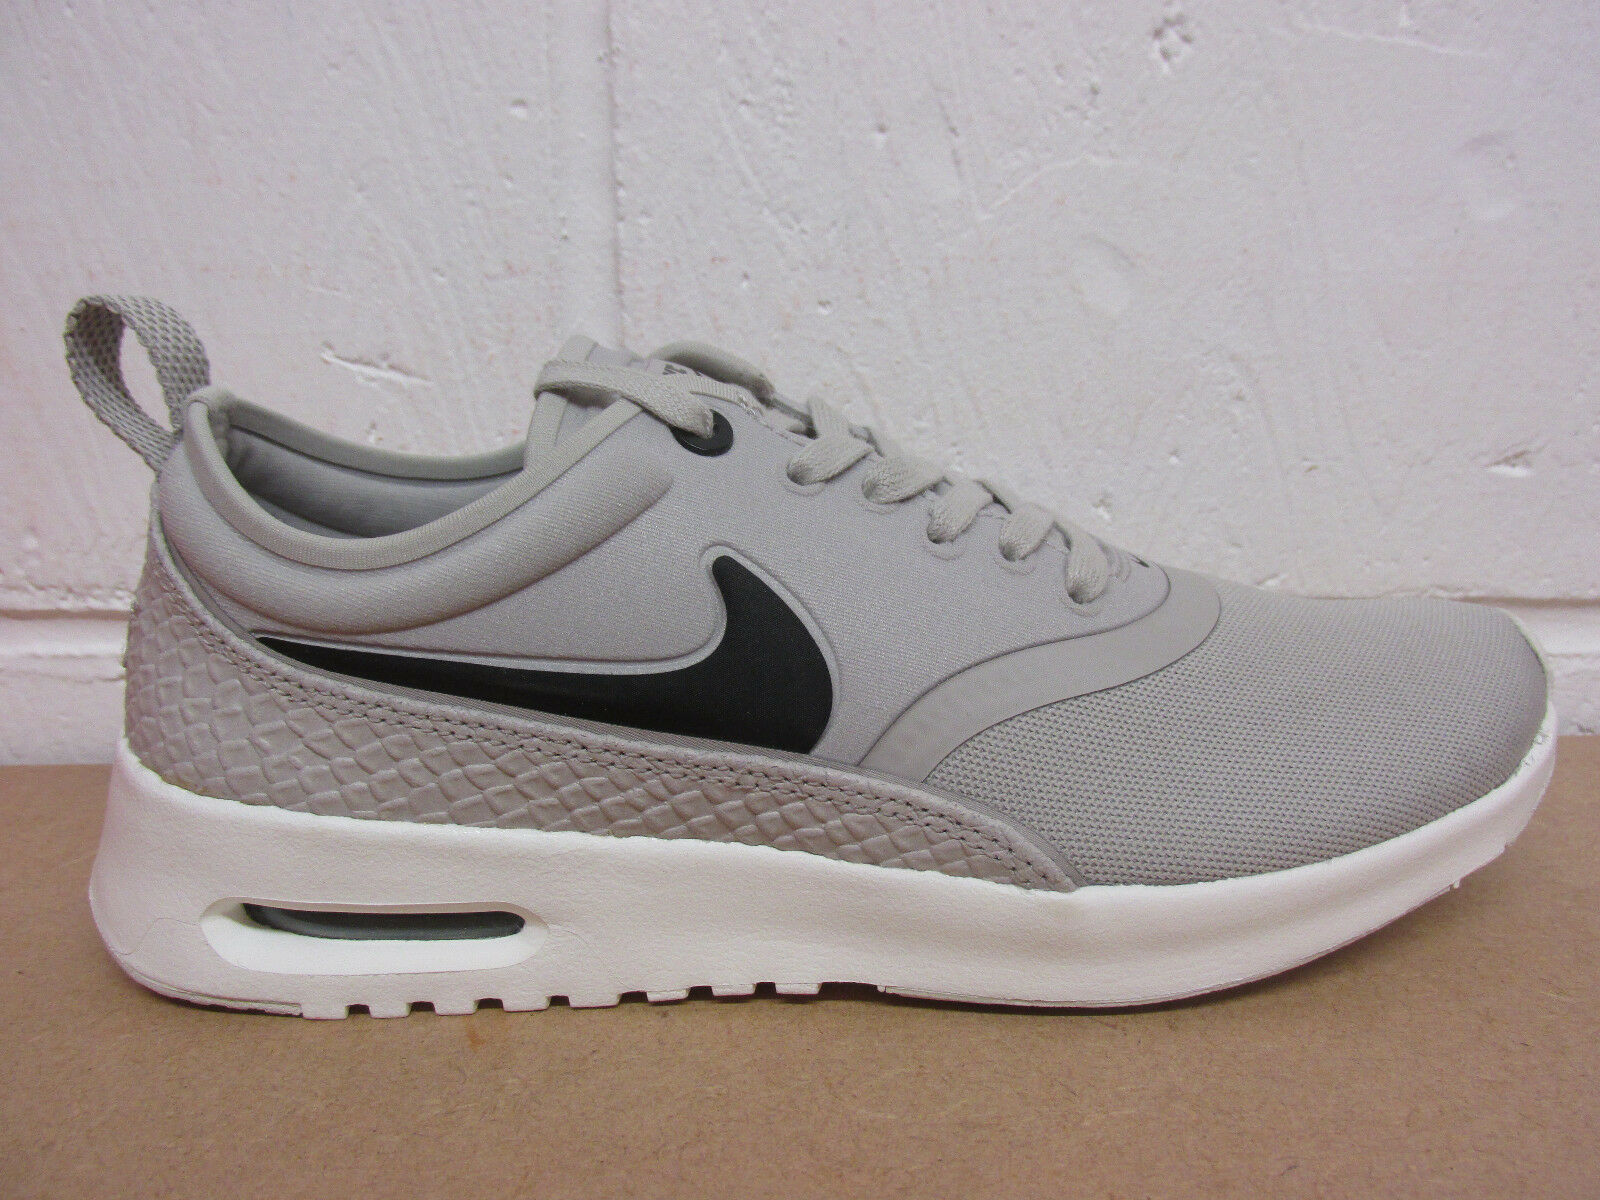 Nike Womens Air Max Thea Ultra PRM Running Trainers Sneakers Shoes